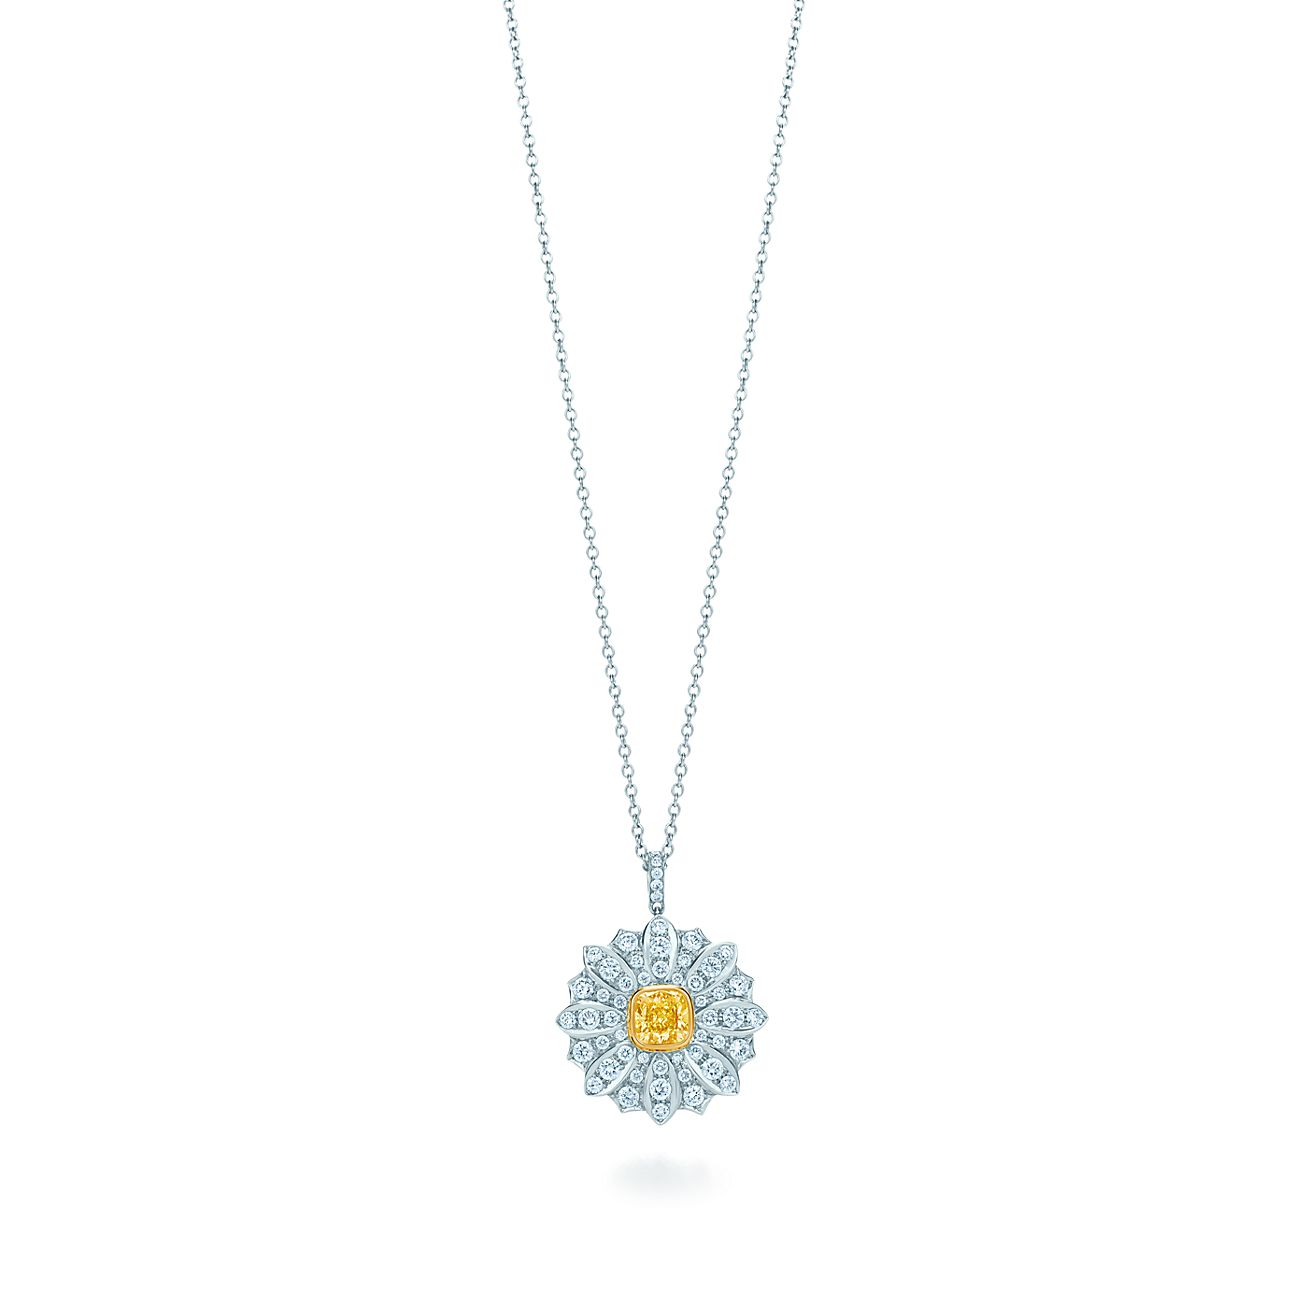 jewellery pendant white image necklaces plated enamel georg gold with jensen daisy